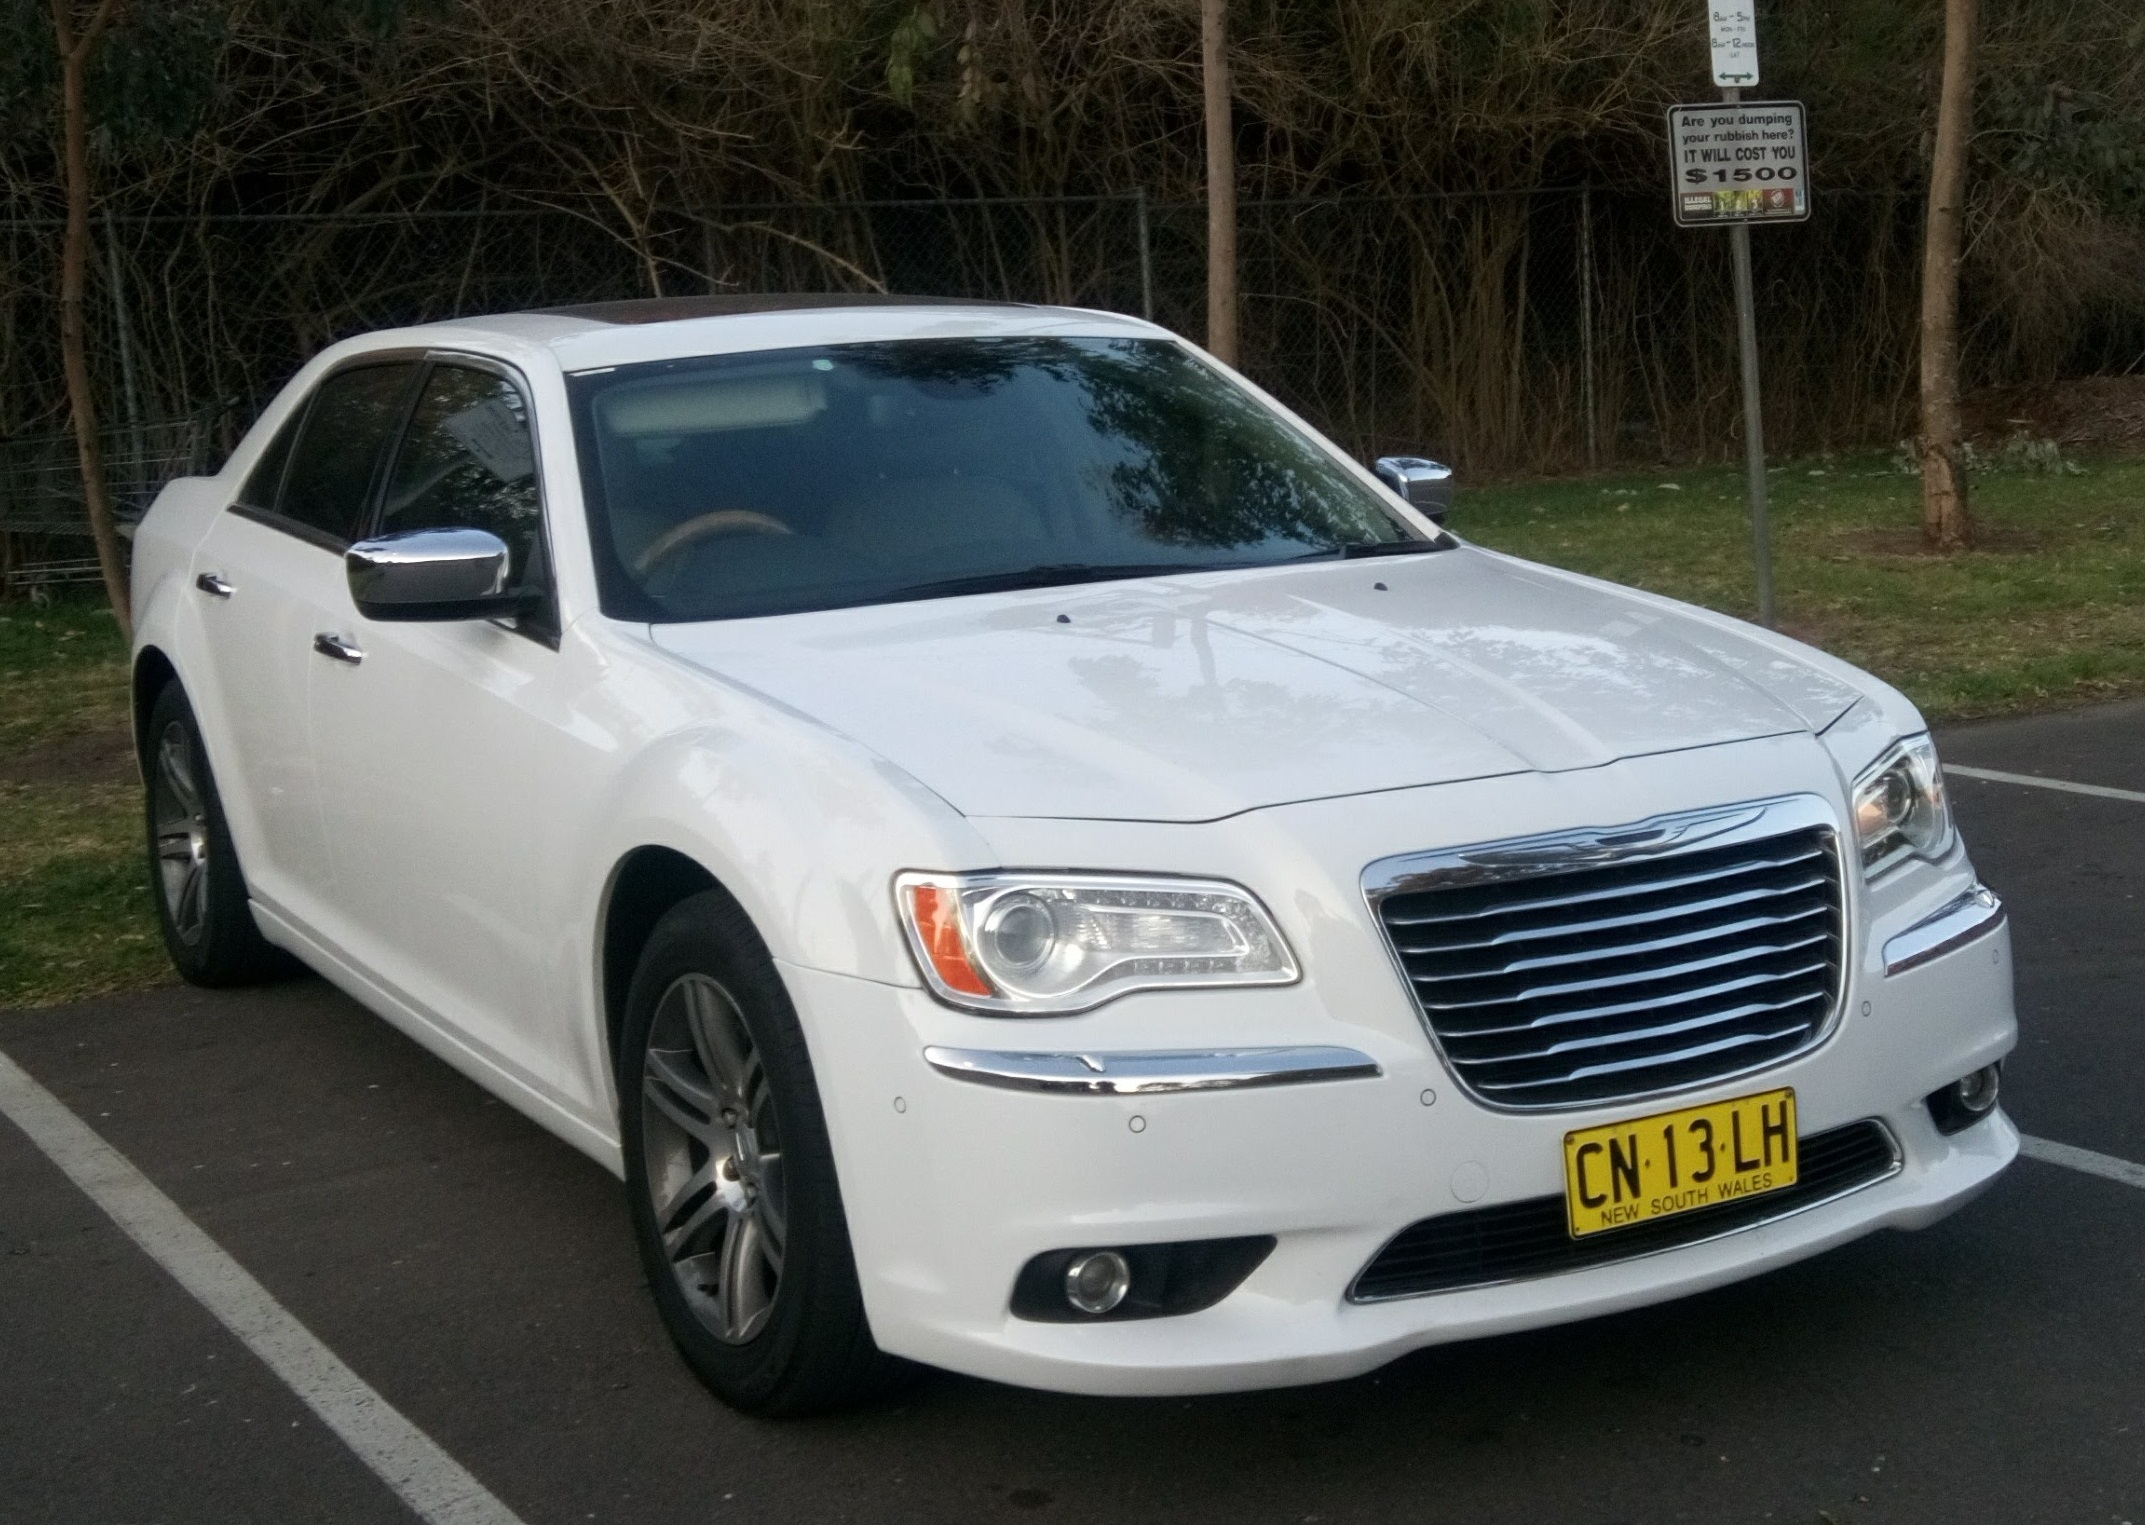 Picture of Tushar's 2013 Chrysler 300C Luxury